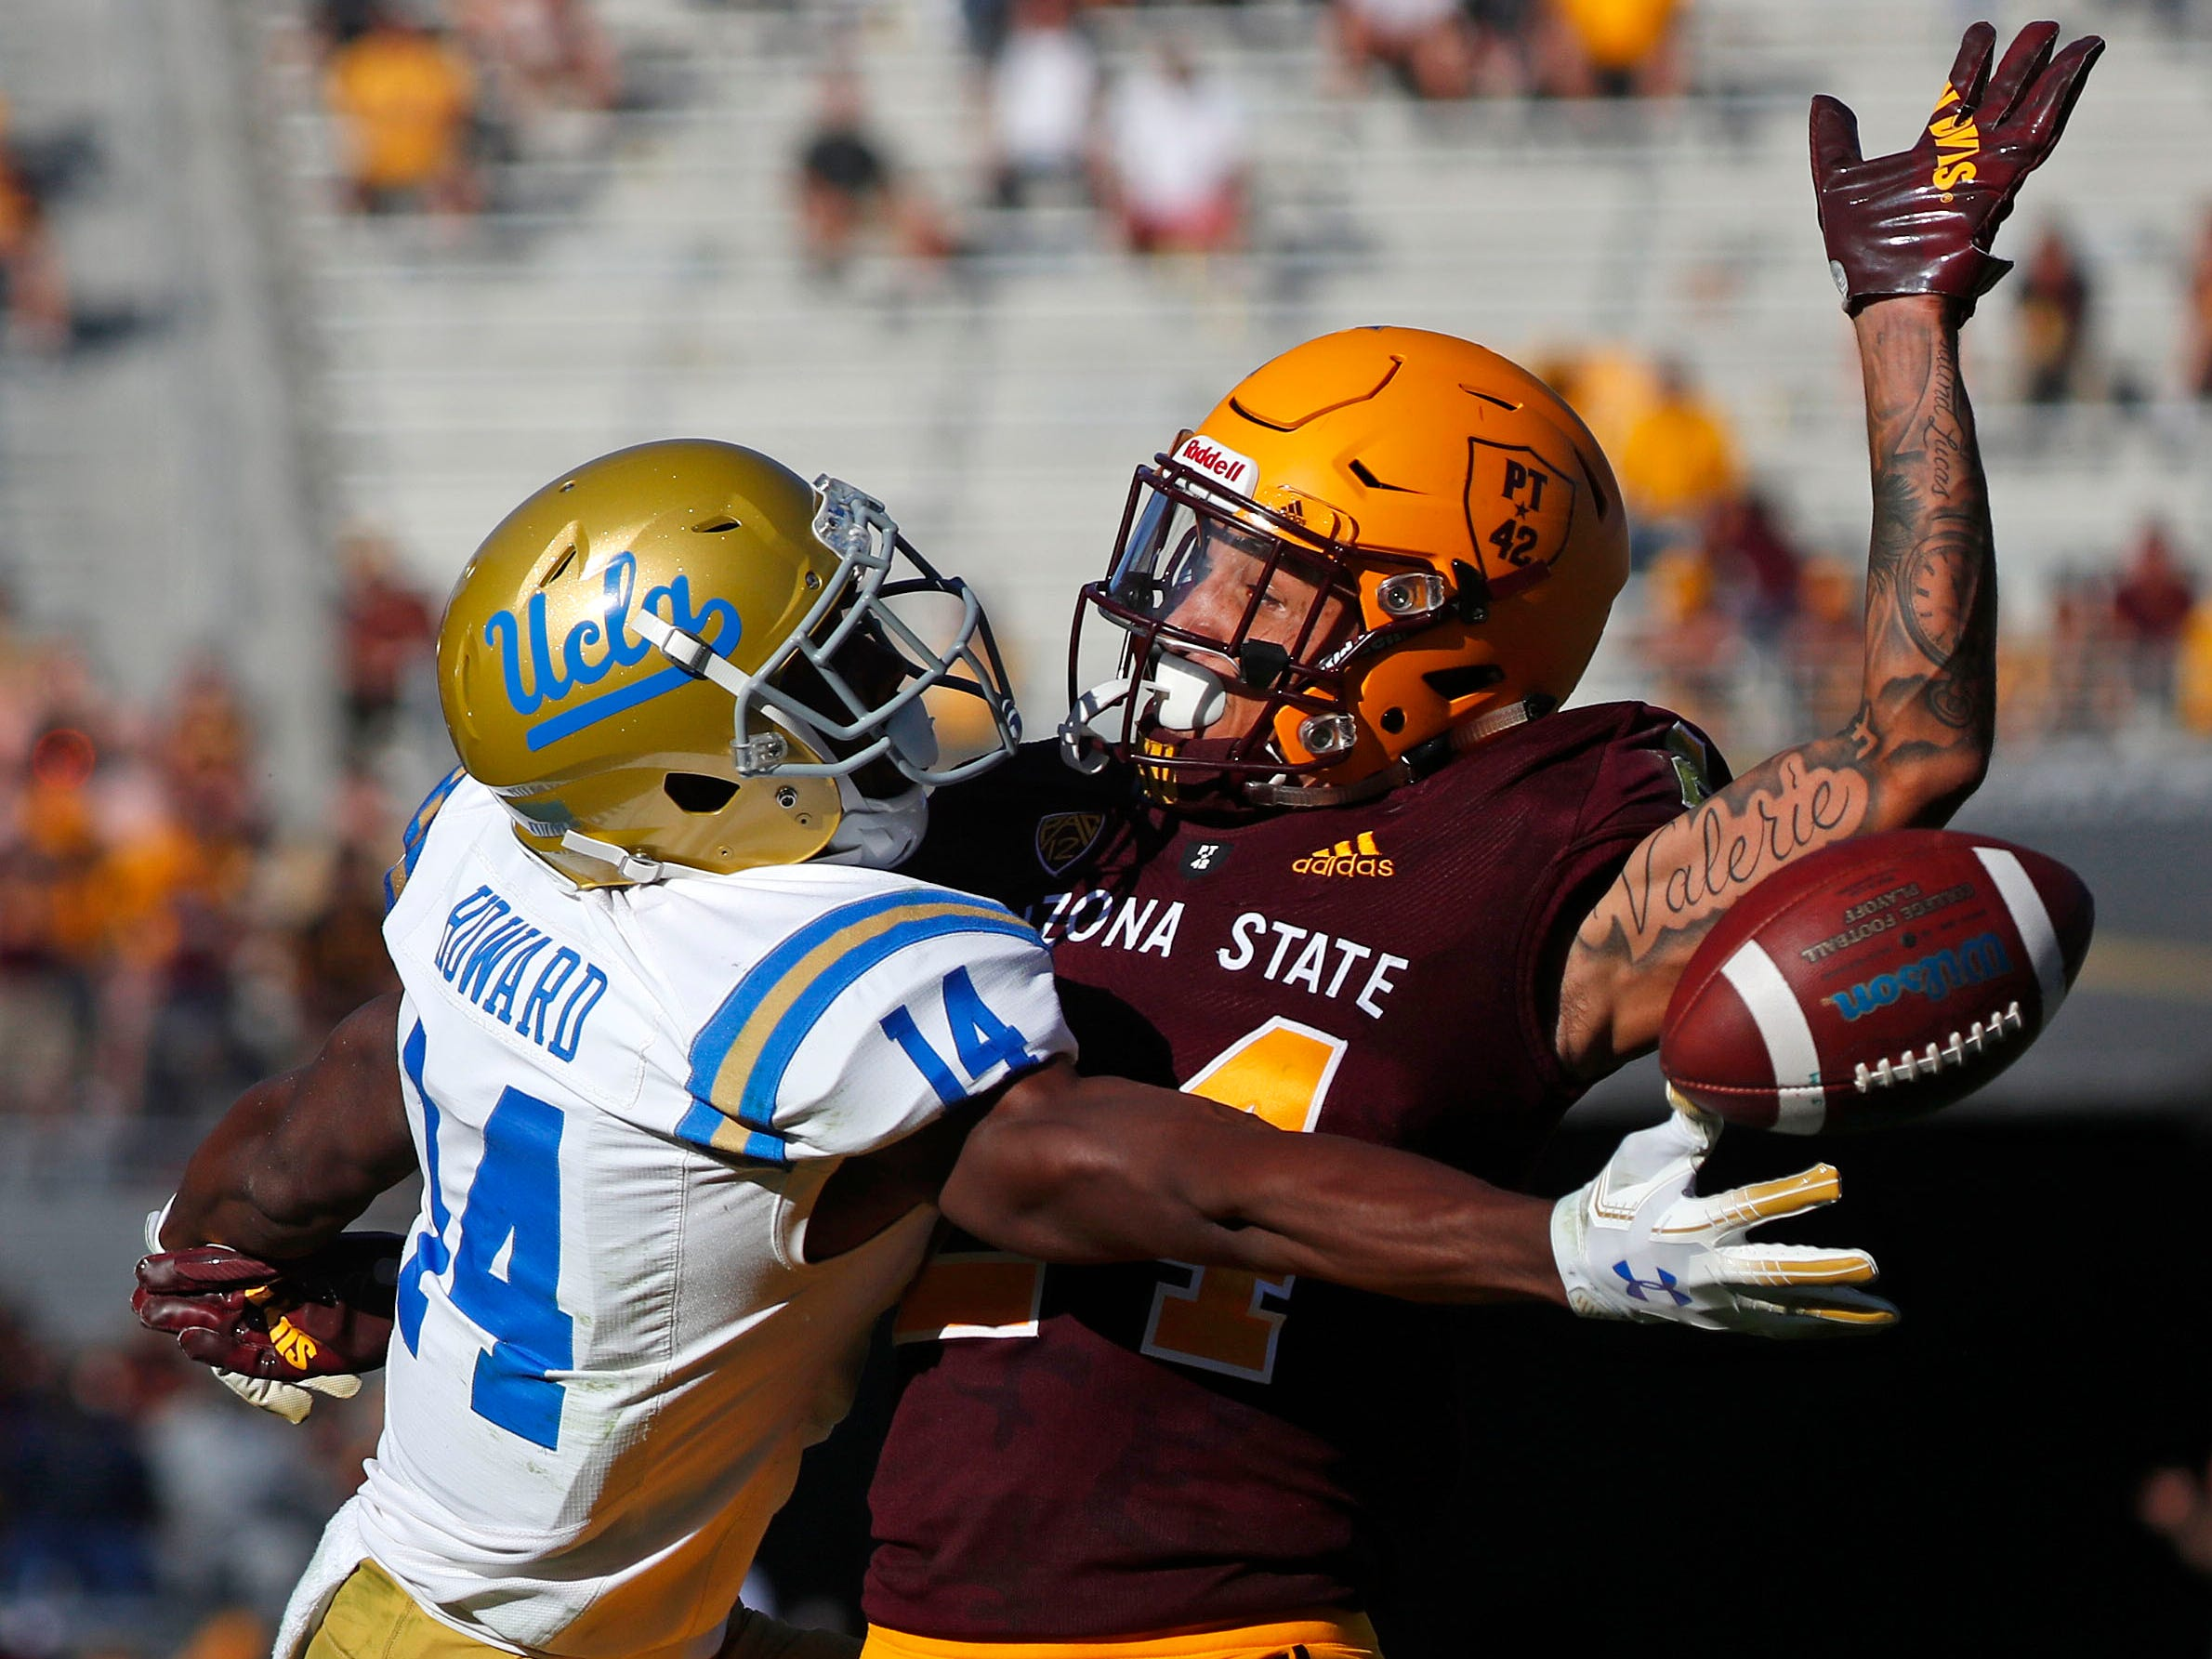 ASU's Chase Lucas (24) is called for pass interference on UCLA's Theo Howard (14) during the second half at Sun Devil Stadium in Tempe, Ariz. on November 10, 2018.